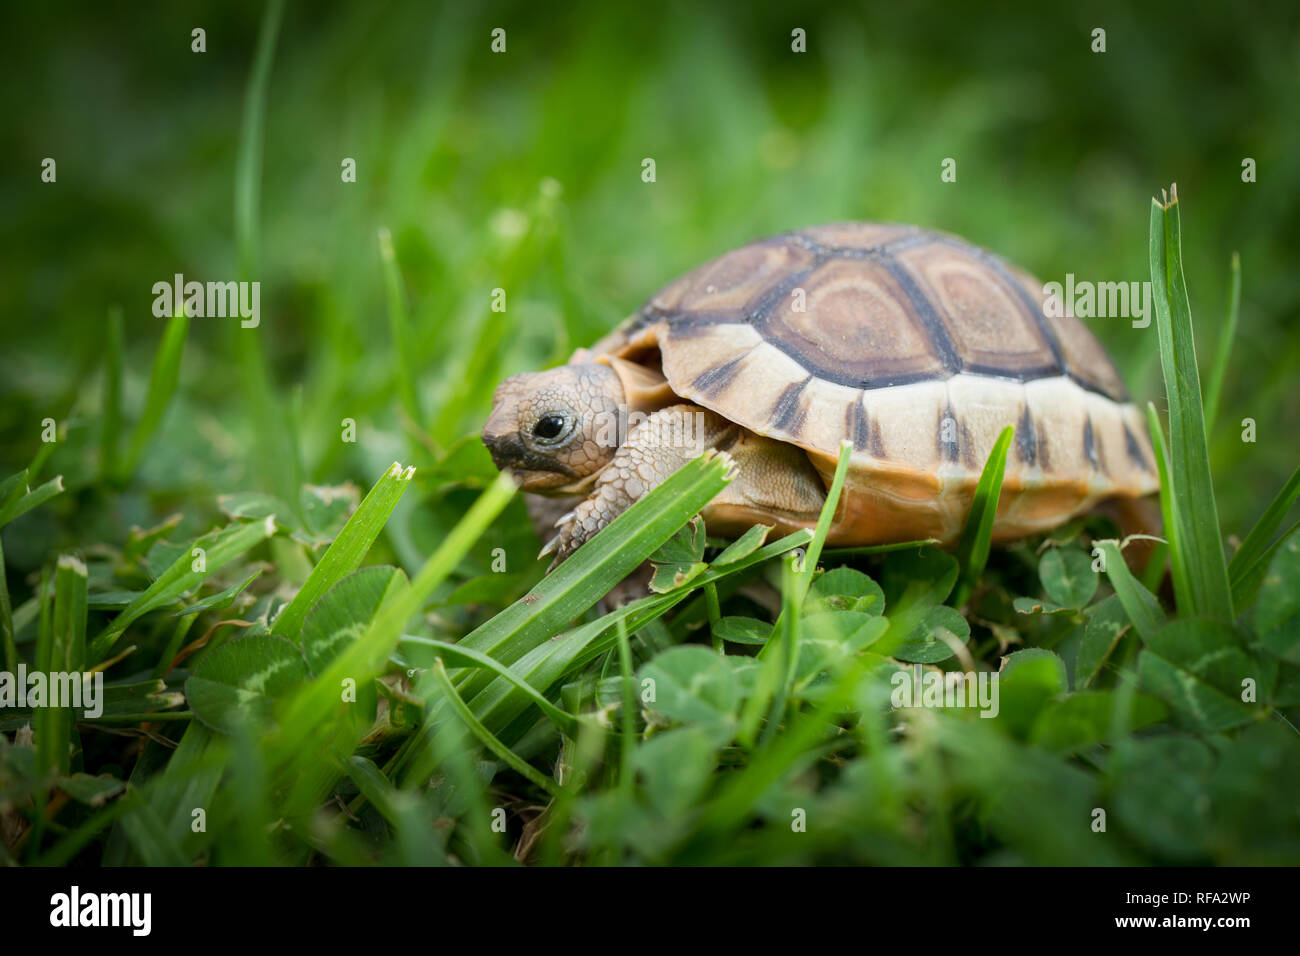 Angulate tortoises occur naturally in dry scrub habitats in the southwest  coastal areas of South Africa, but they are commonly kept as garden pets. - Stock Image